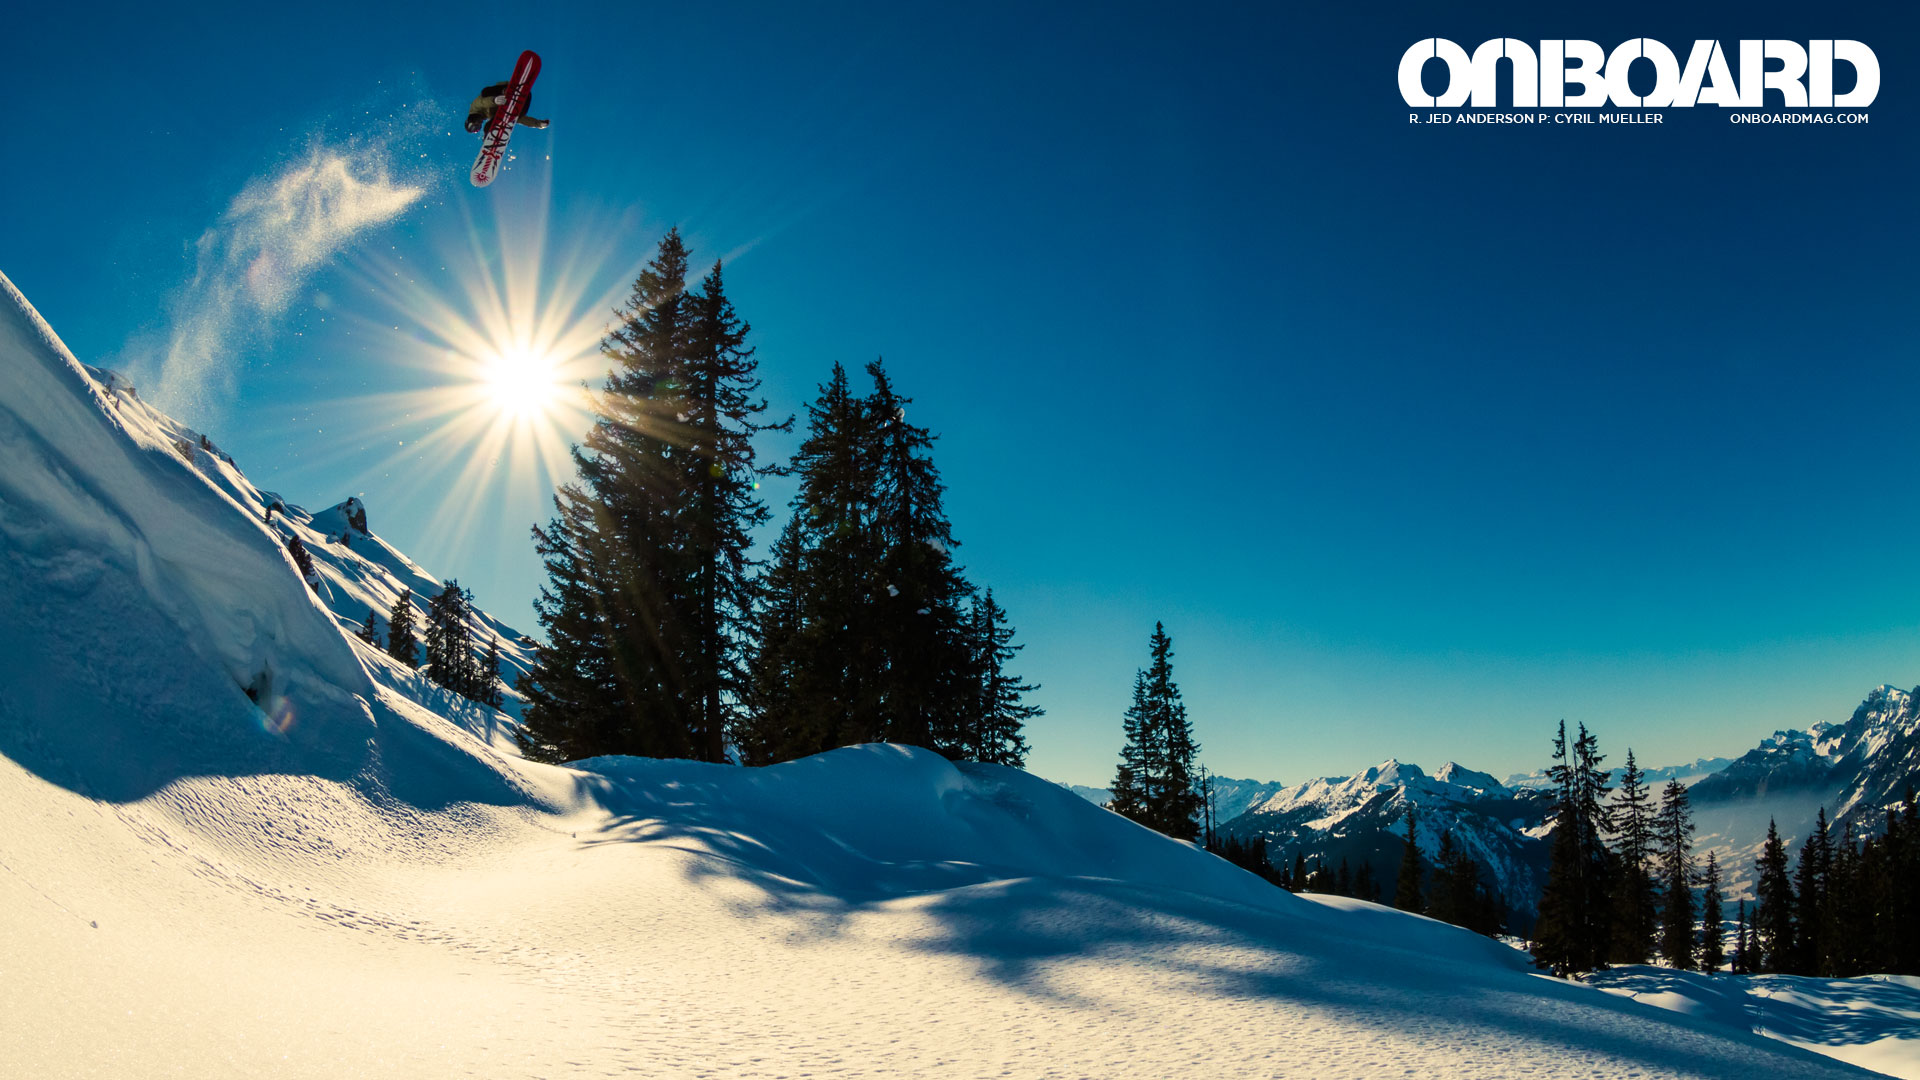 1920x1080 - Snowboarding Wallpapers 22